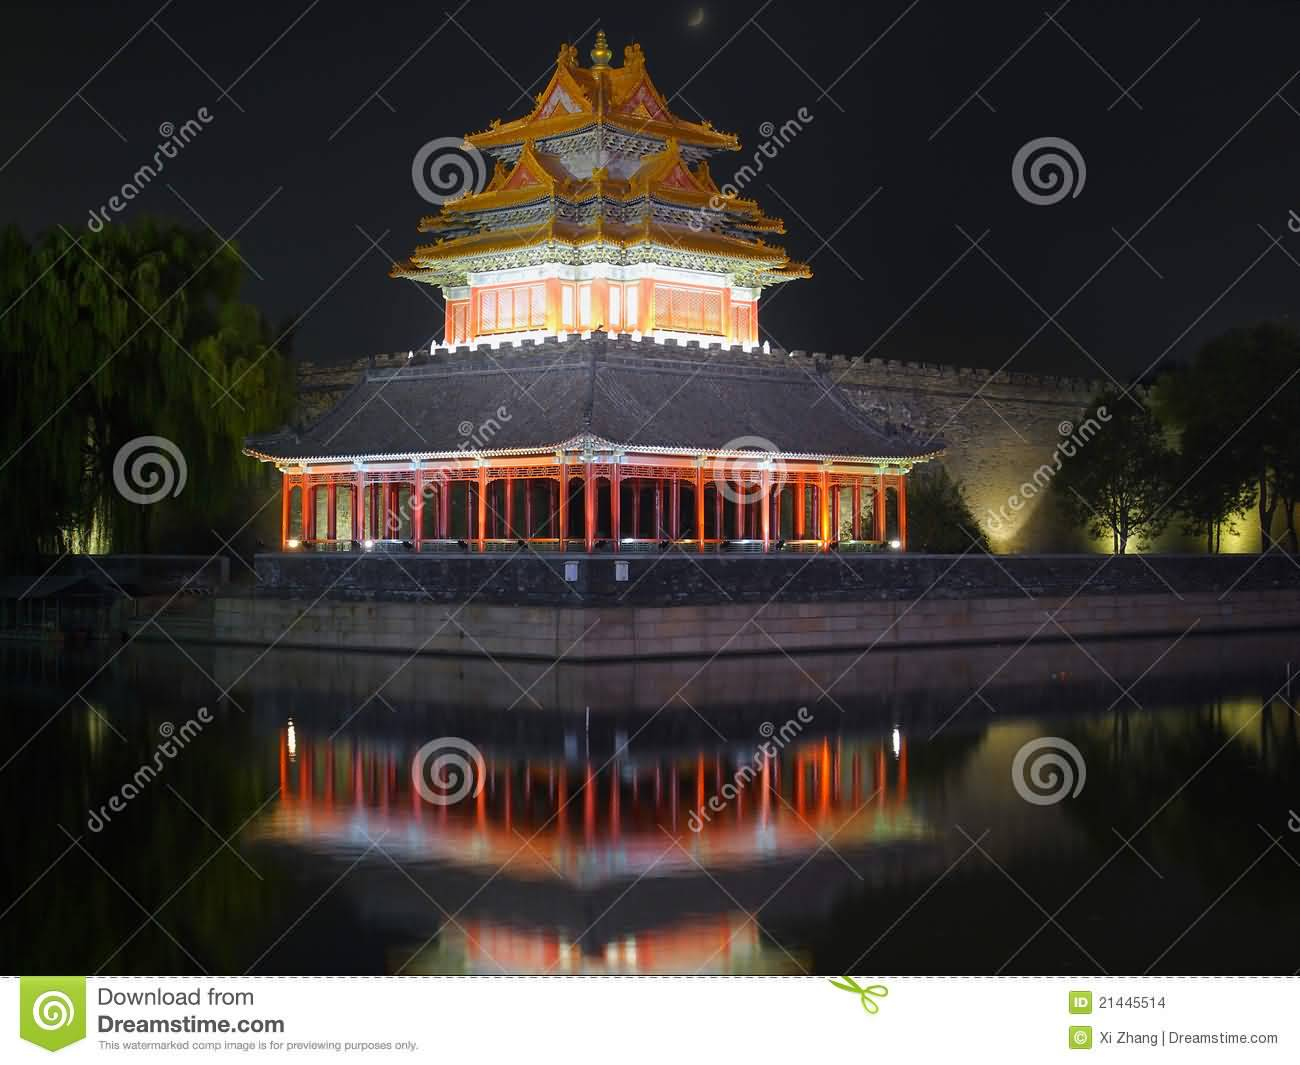 Night View Of Forbidden City In Beijing China